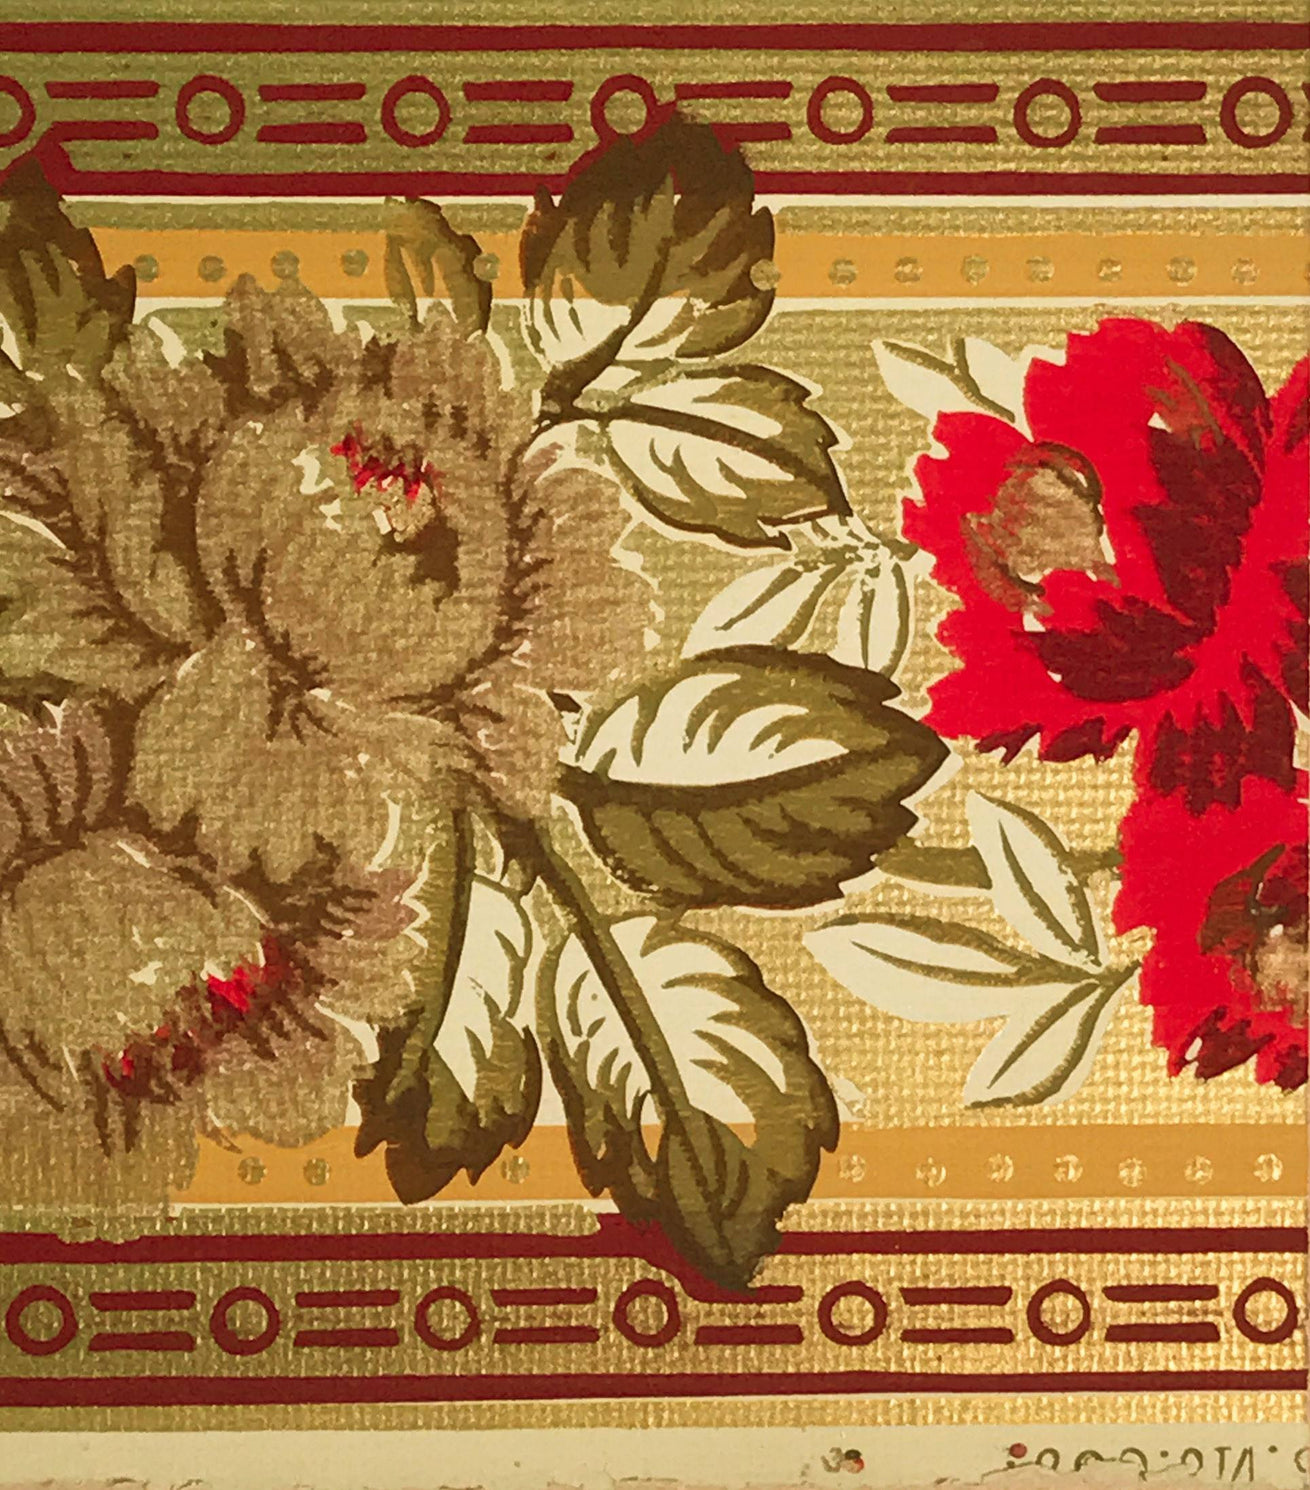 3-Band Gilt Floral Border - Mounted Antique Wallpaper Panel